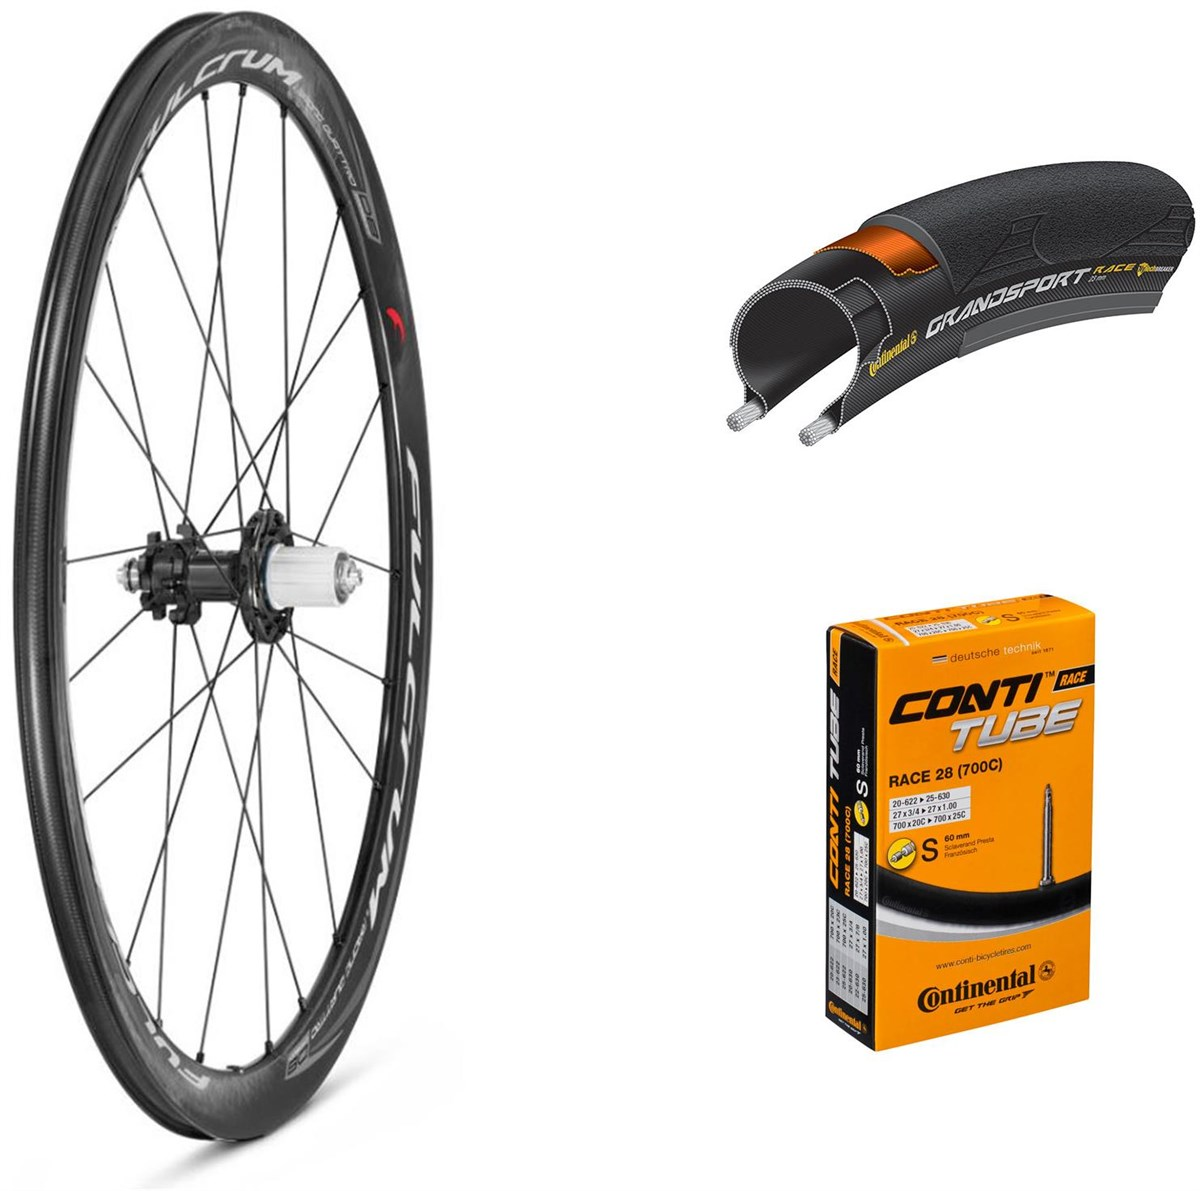 Fulcrum Racing Quattro Carbon Disc 700c Wheelset with Tyres and Tubes | Hjulsæt